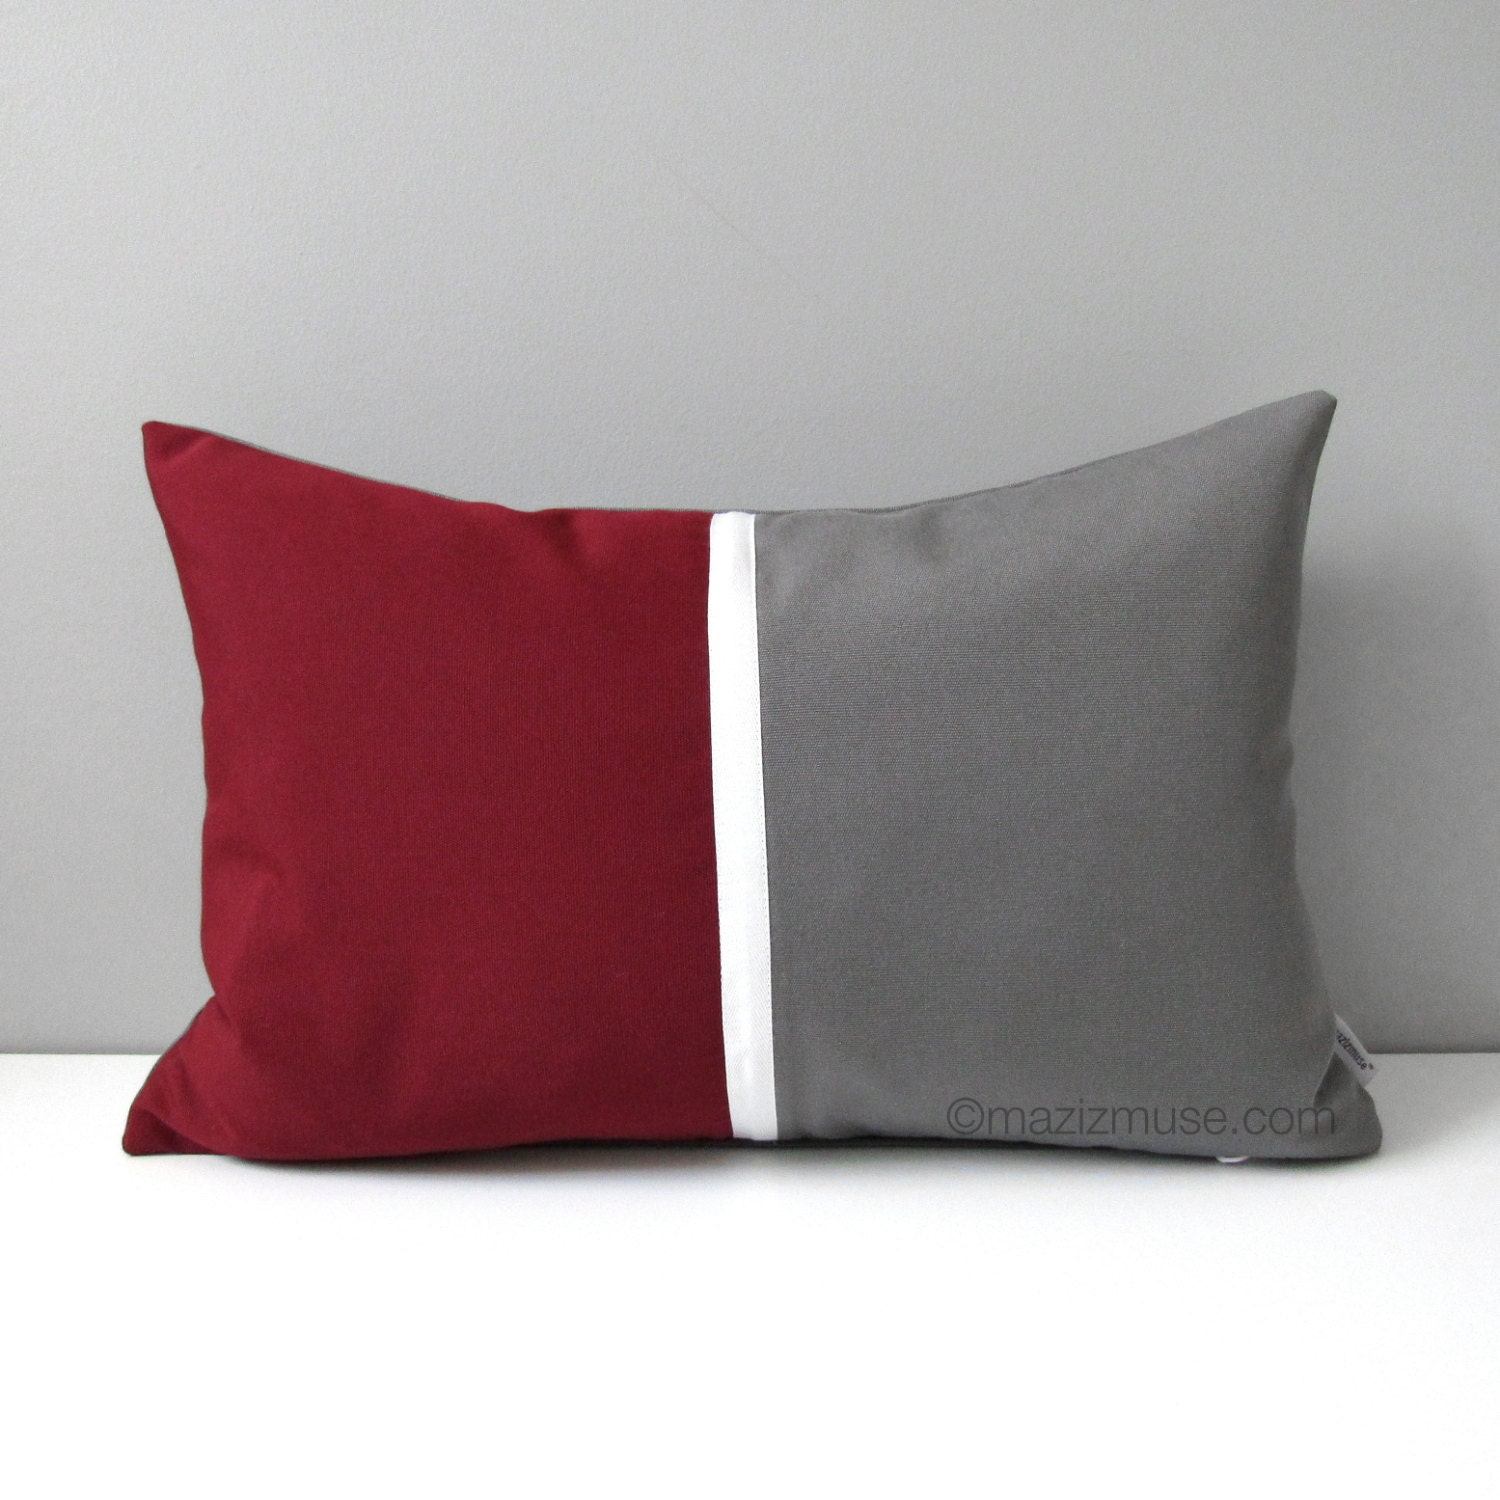 Modern Pillows And Throws : Burgundy & Grey Pillow Cover Modern Outdoor Pillow by Mazizmuse